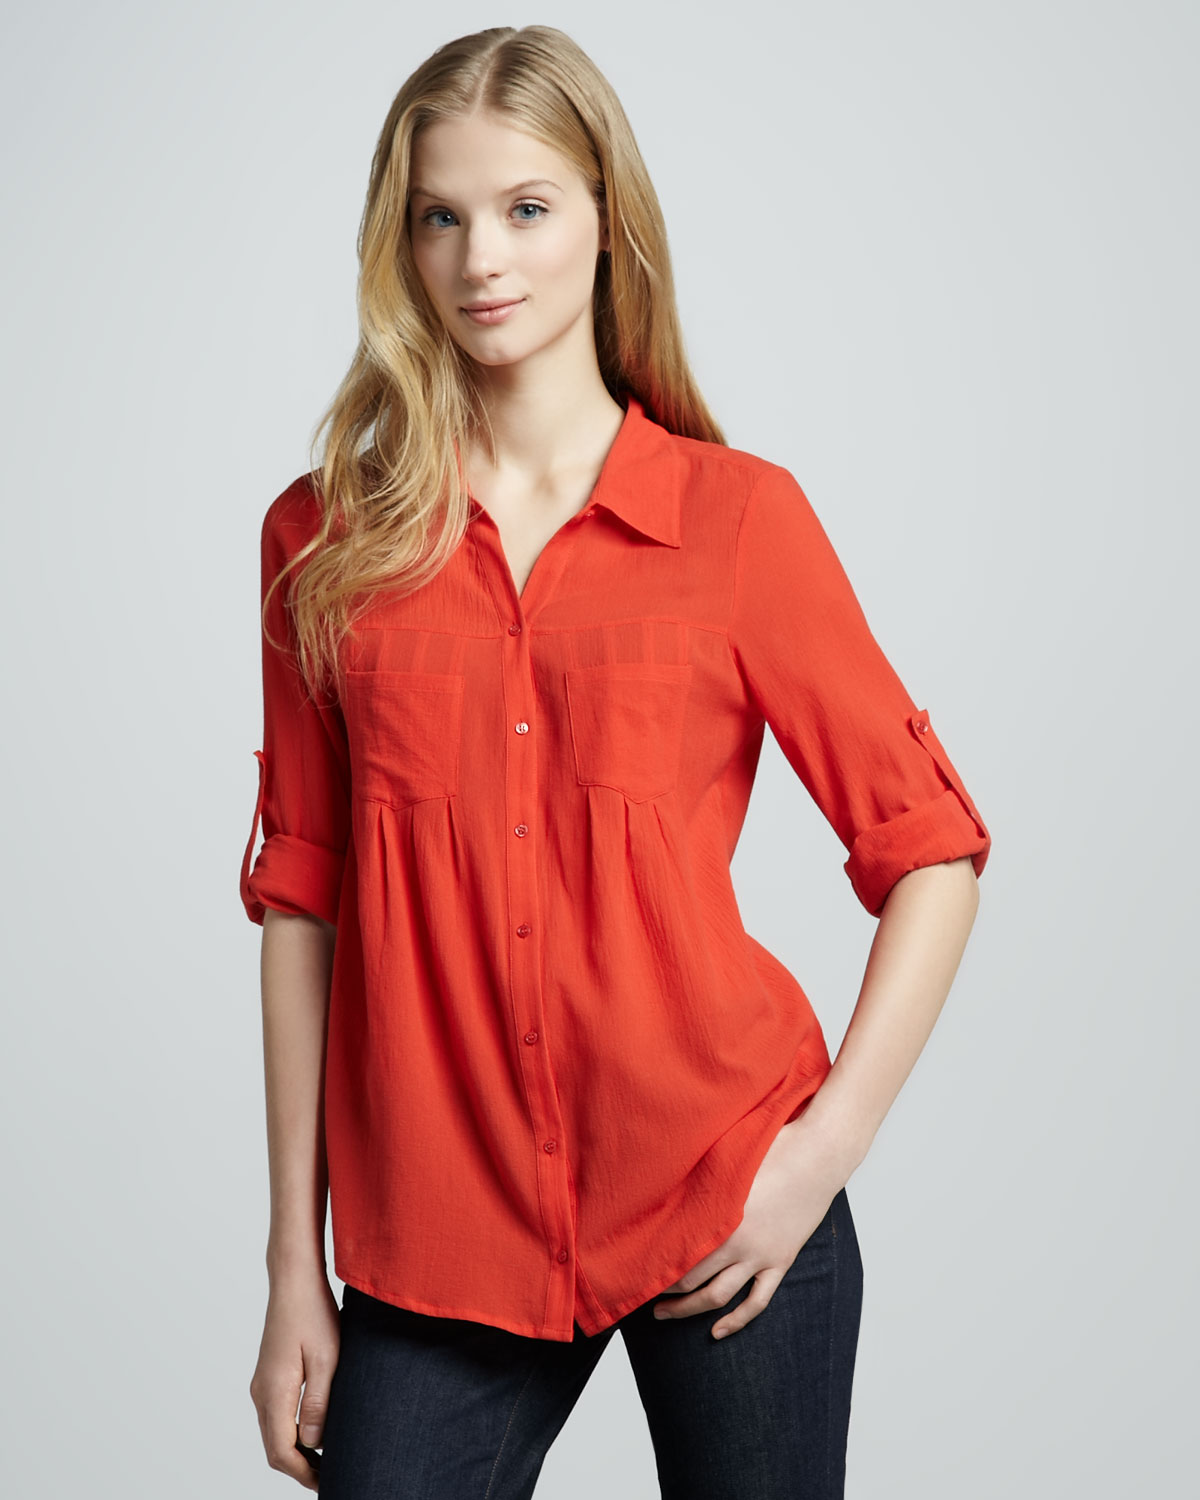 Joie-Pinot-Double-Pocket-Blouse-Cherry